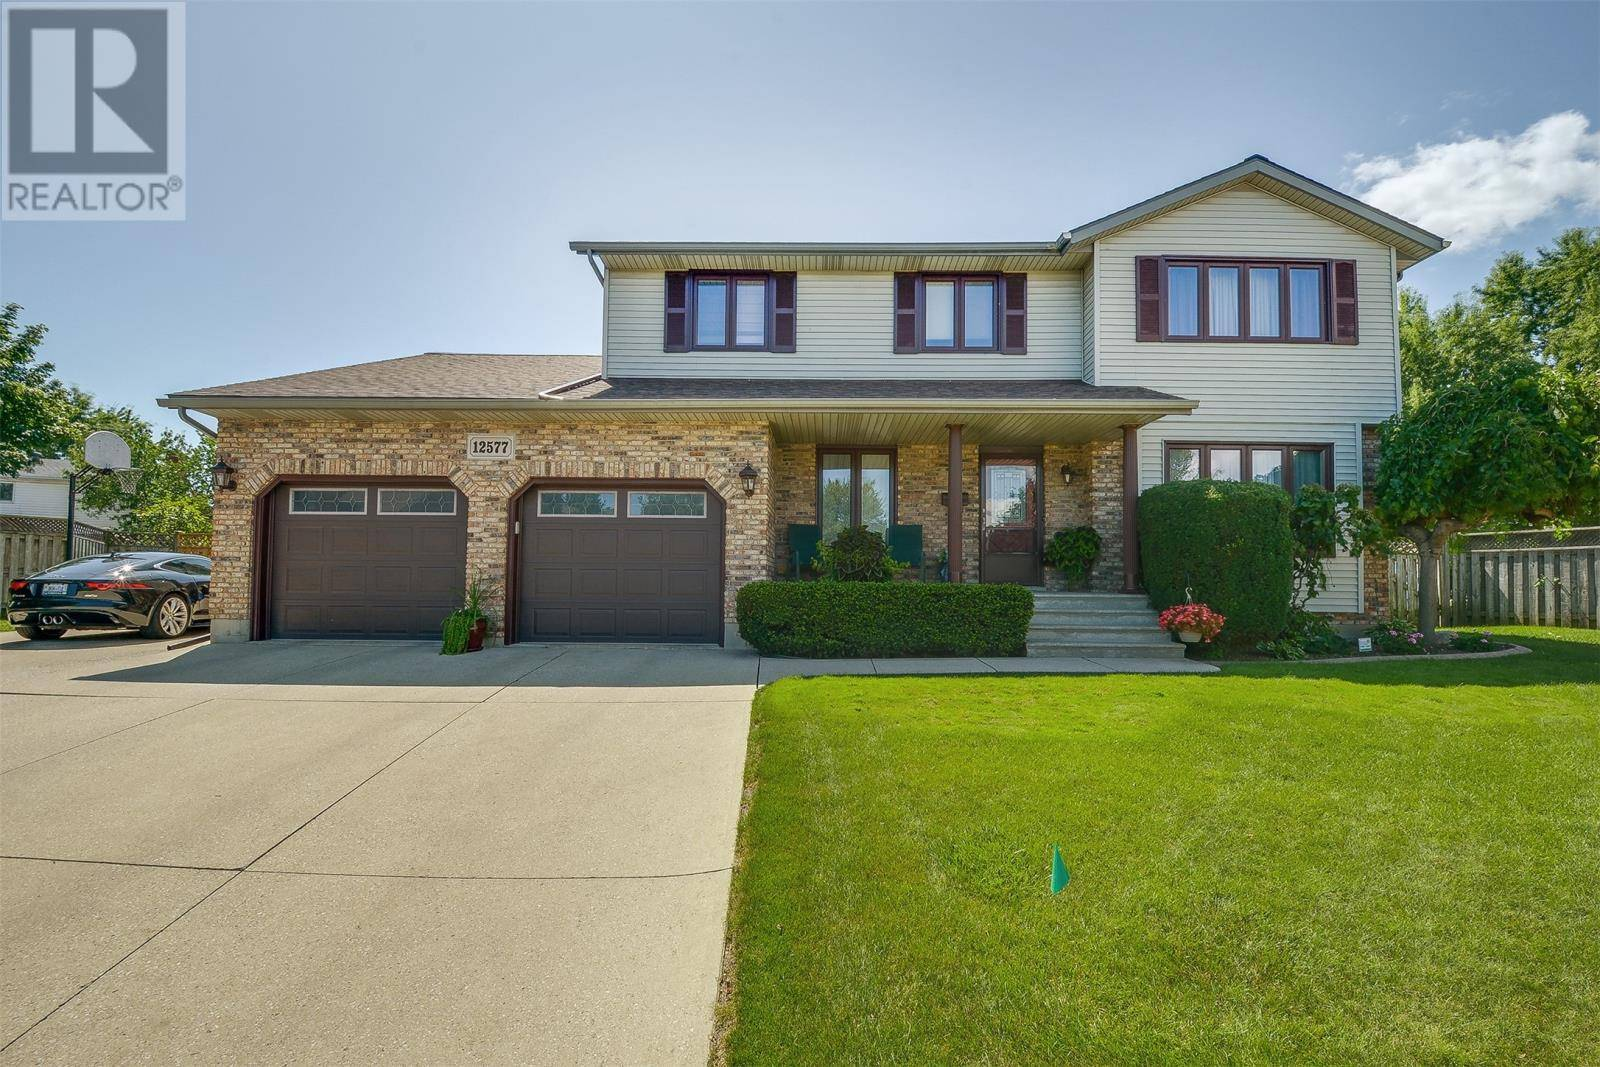 House for sale at 12577 Jelso Pl Tecumseh Ontario - MLS: 19027250